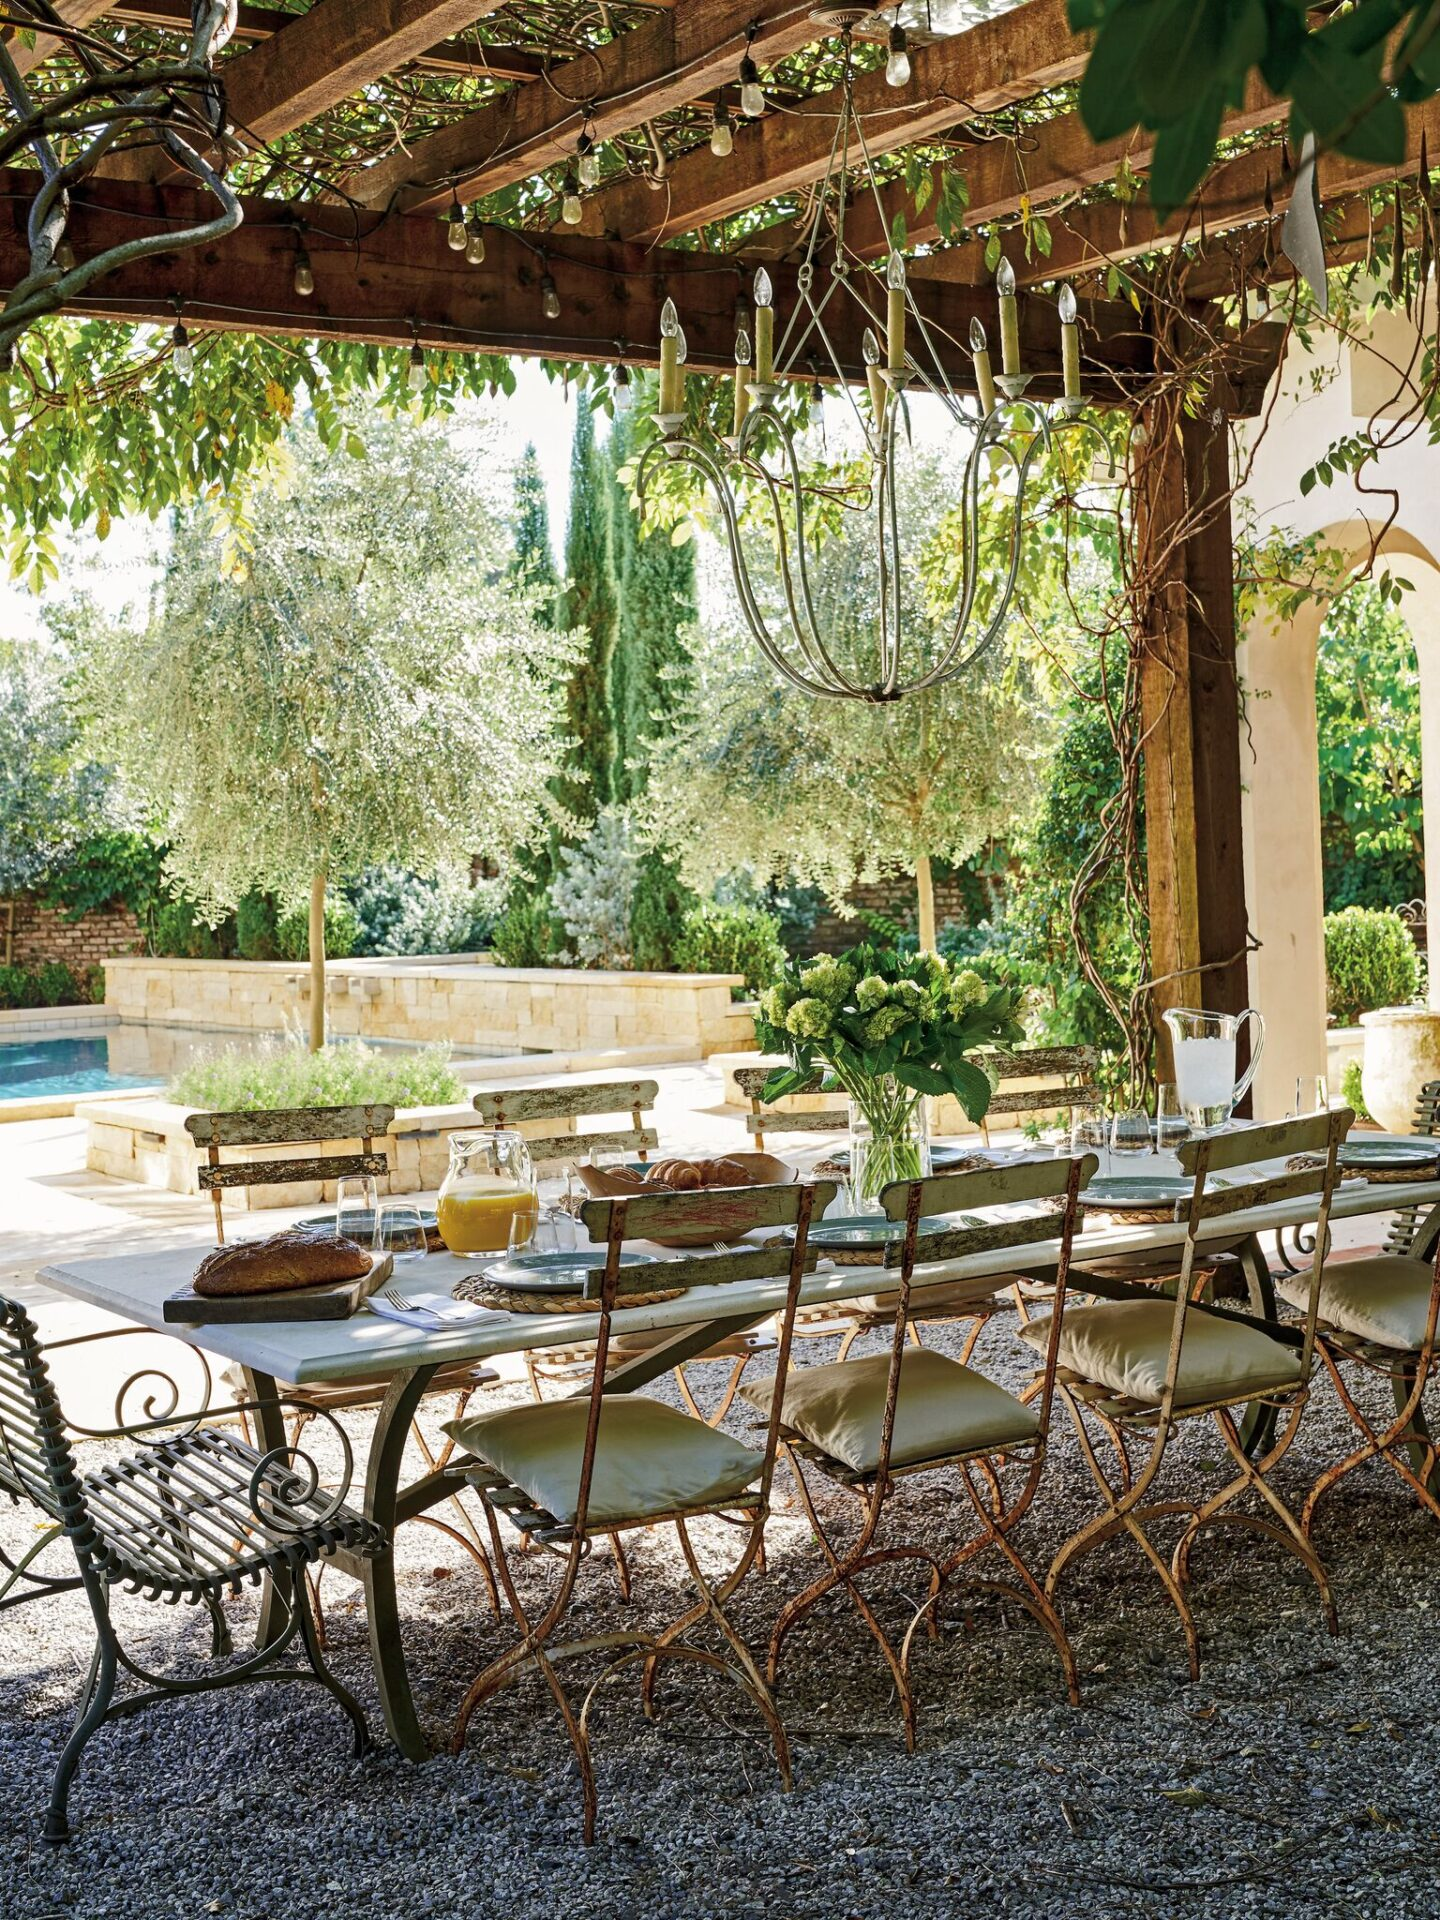 This outdoor dining area designed by Tara Shaw is an oasis with wisteria arbor, vintage tables and chairs, iron chandelier and pea gravel. #frenchgarden #frenchcourtyard #outdoordining #oldworldstyle #antiques #outdoooasis #romanticdecor